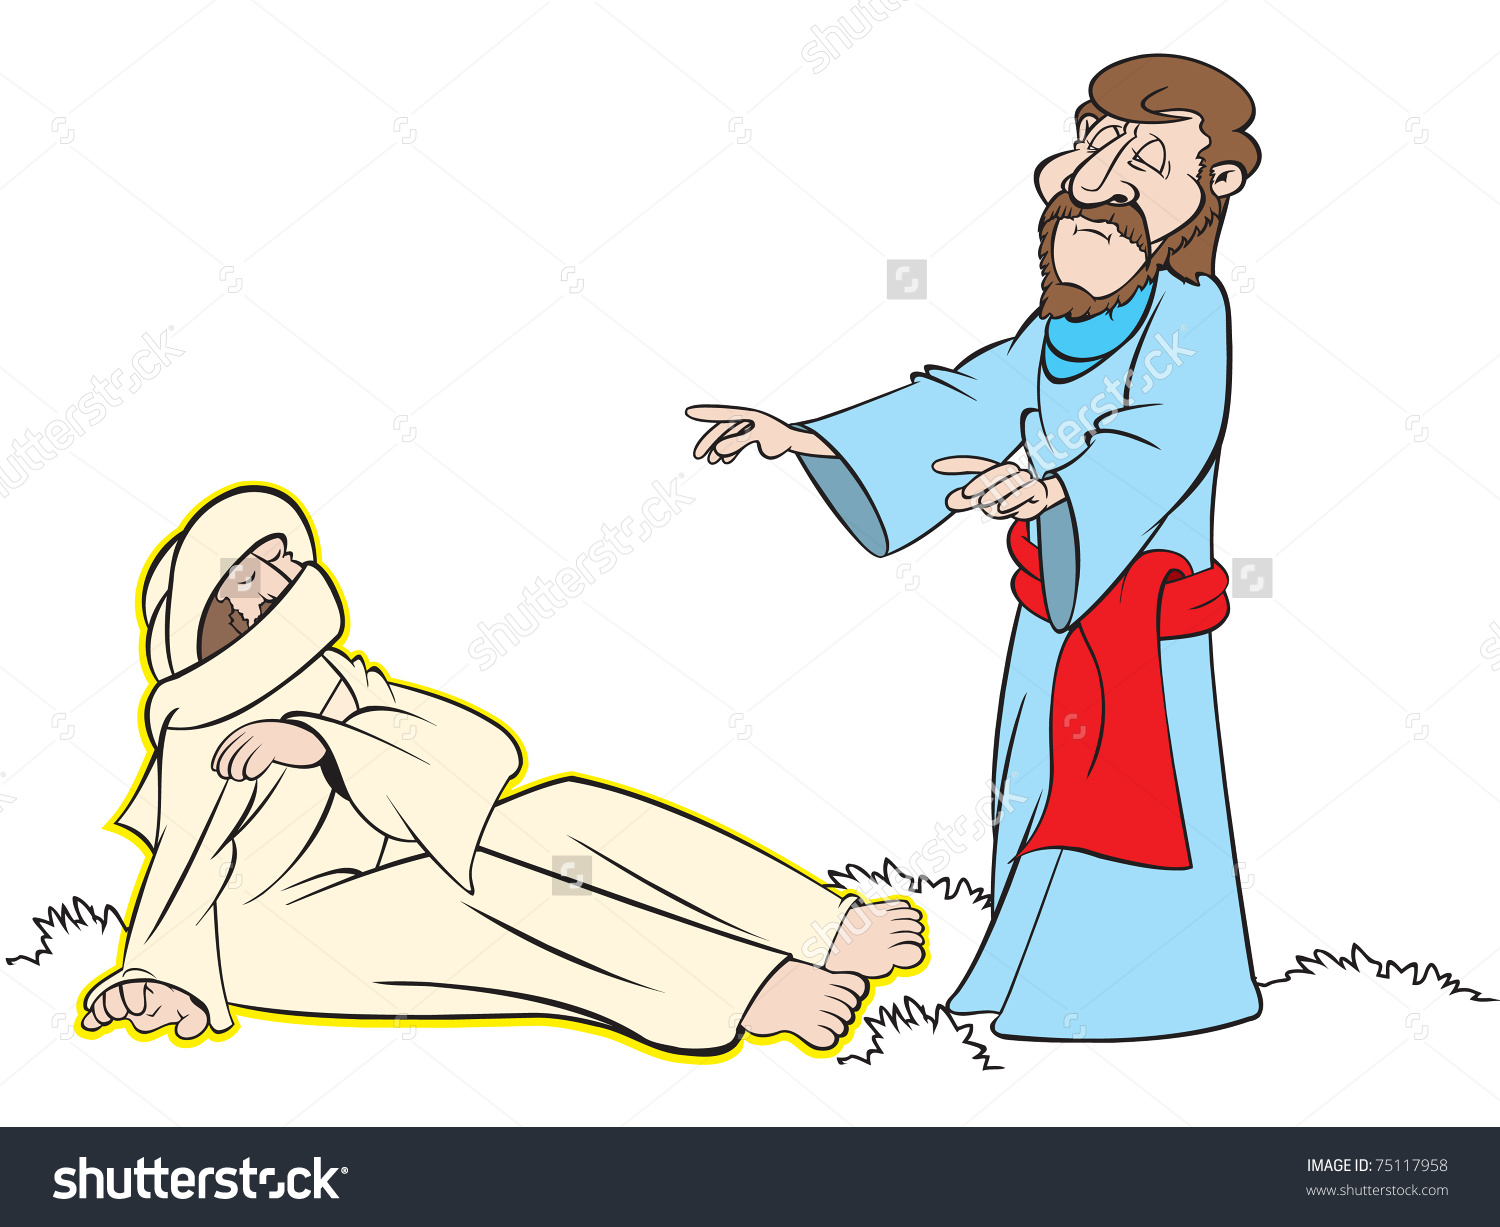 Raises cliparts download images. Free jesus raising lazarus from the dead clipart